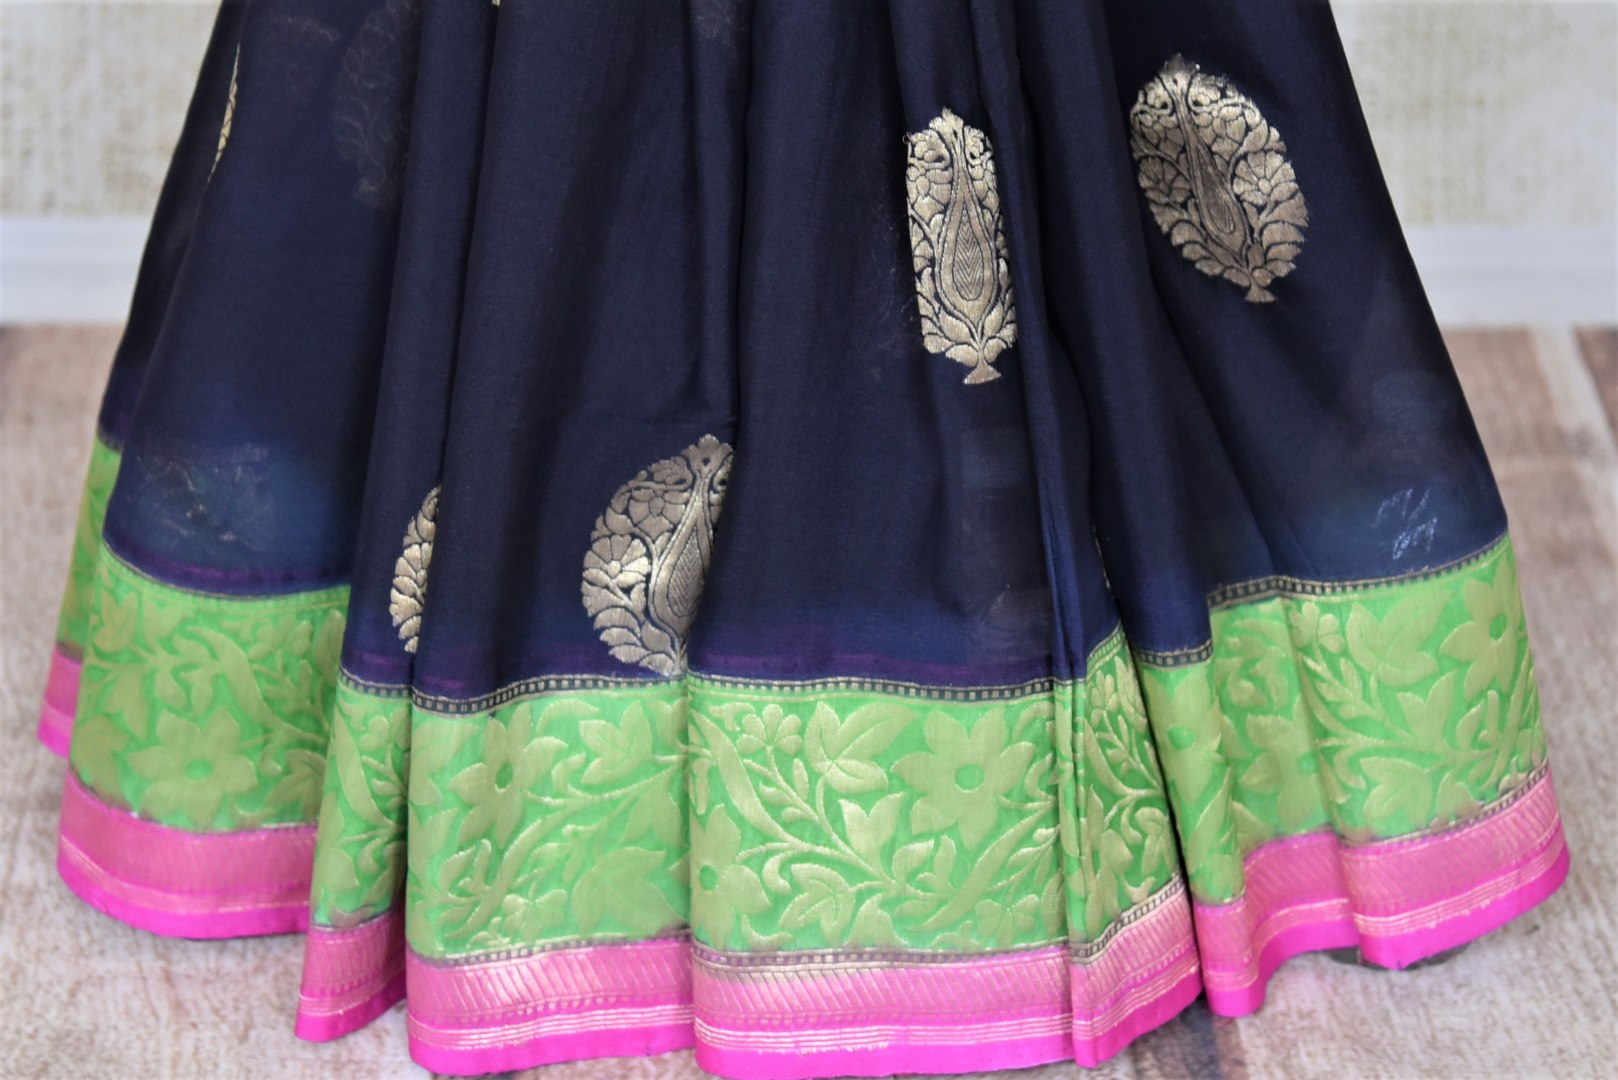 Shop gorgeous black organza Banarasi sari online in USA with green foliate zari border and zari buta. Make your saree wardrobe rich and colorful with stunning handwoven sarees, pure silk sarees, designer sarees from Pure Elegance Indian clothing store in USA.-pleats